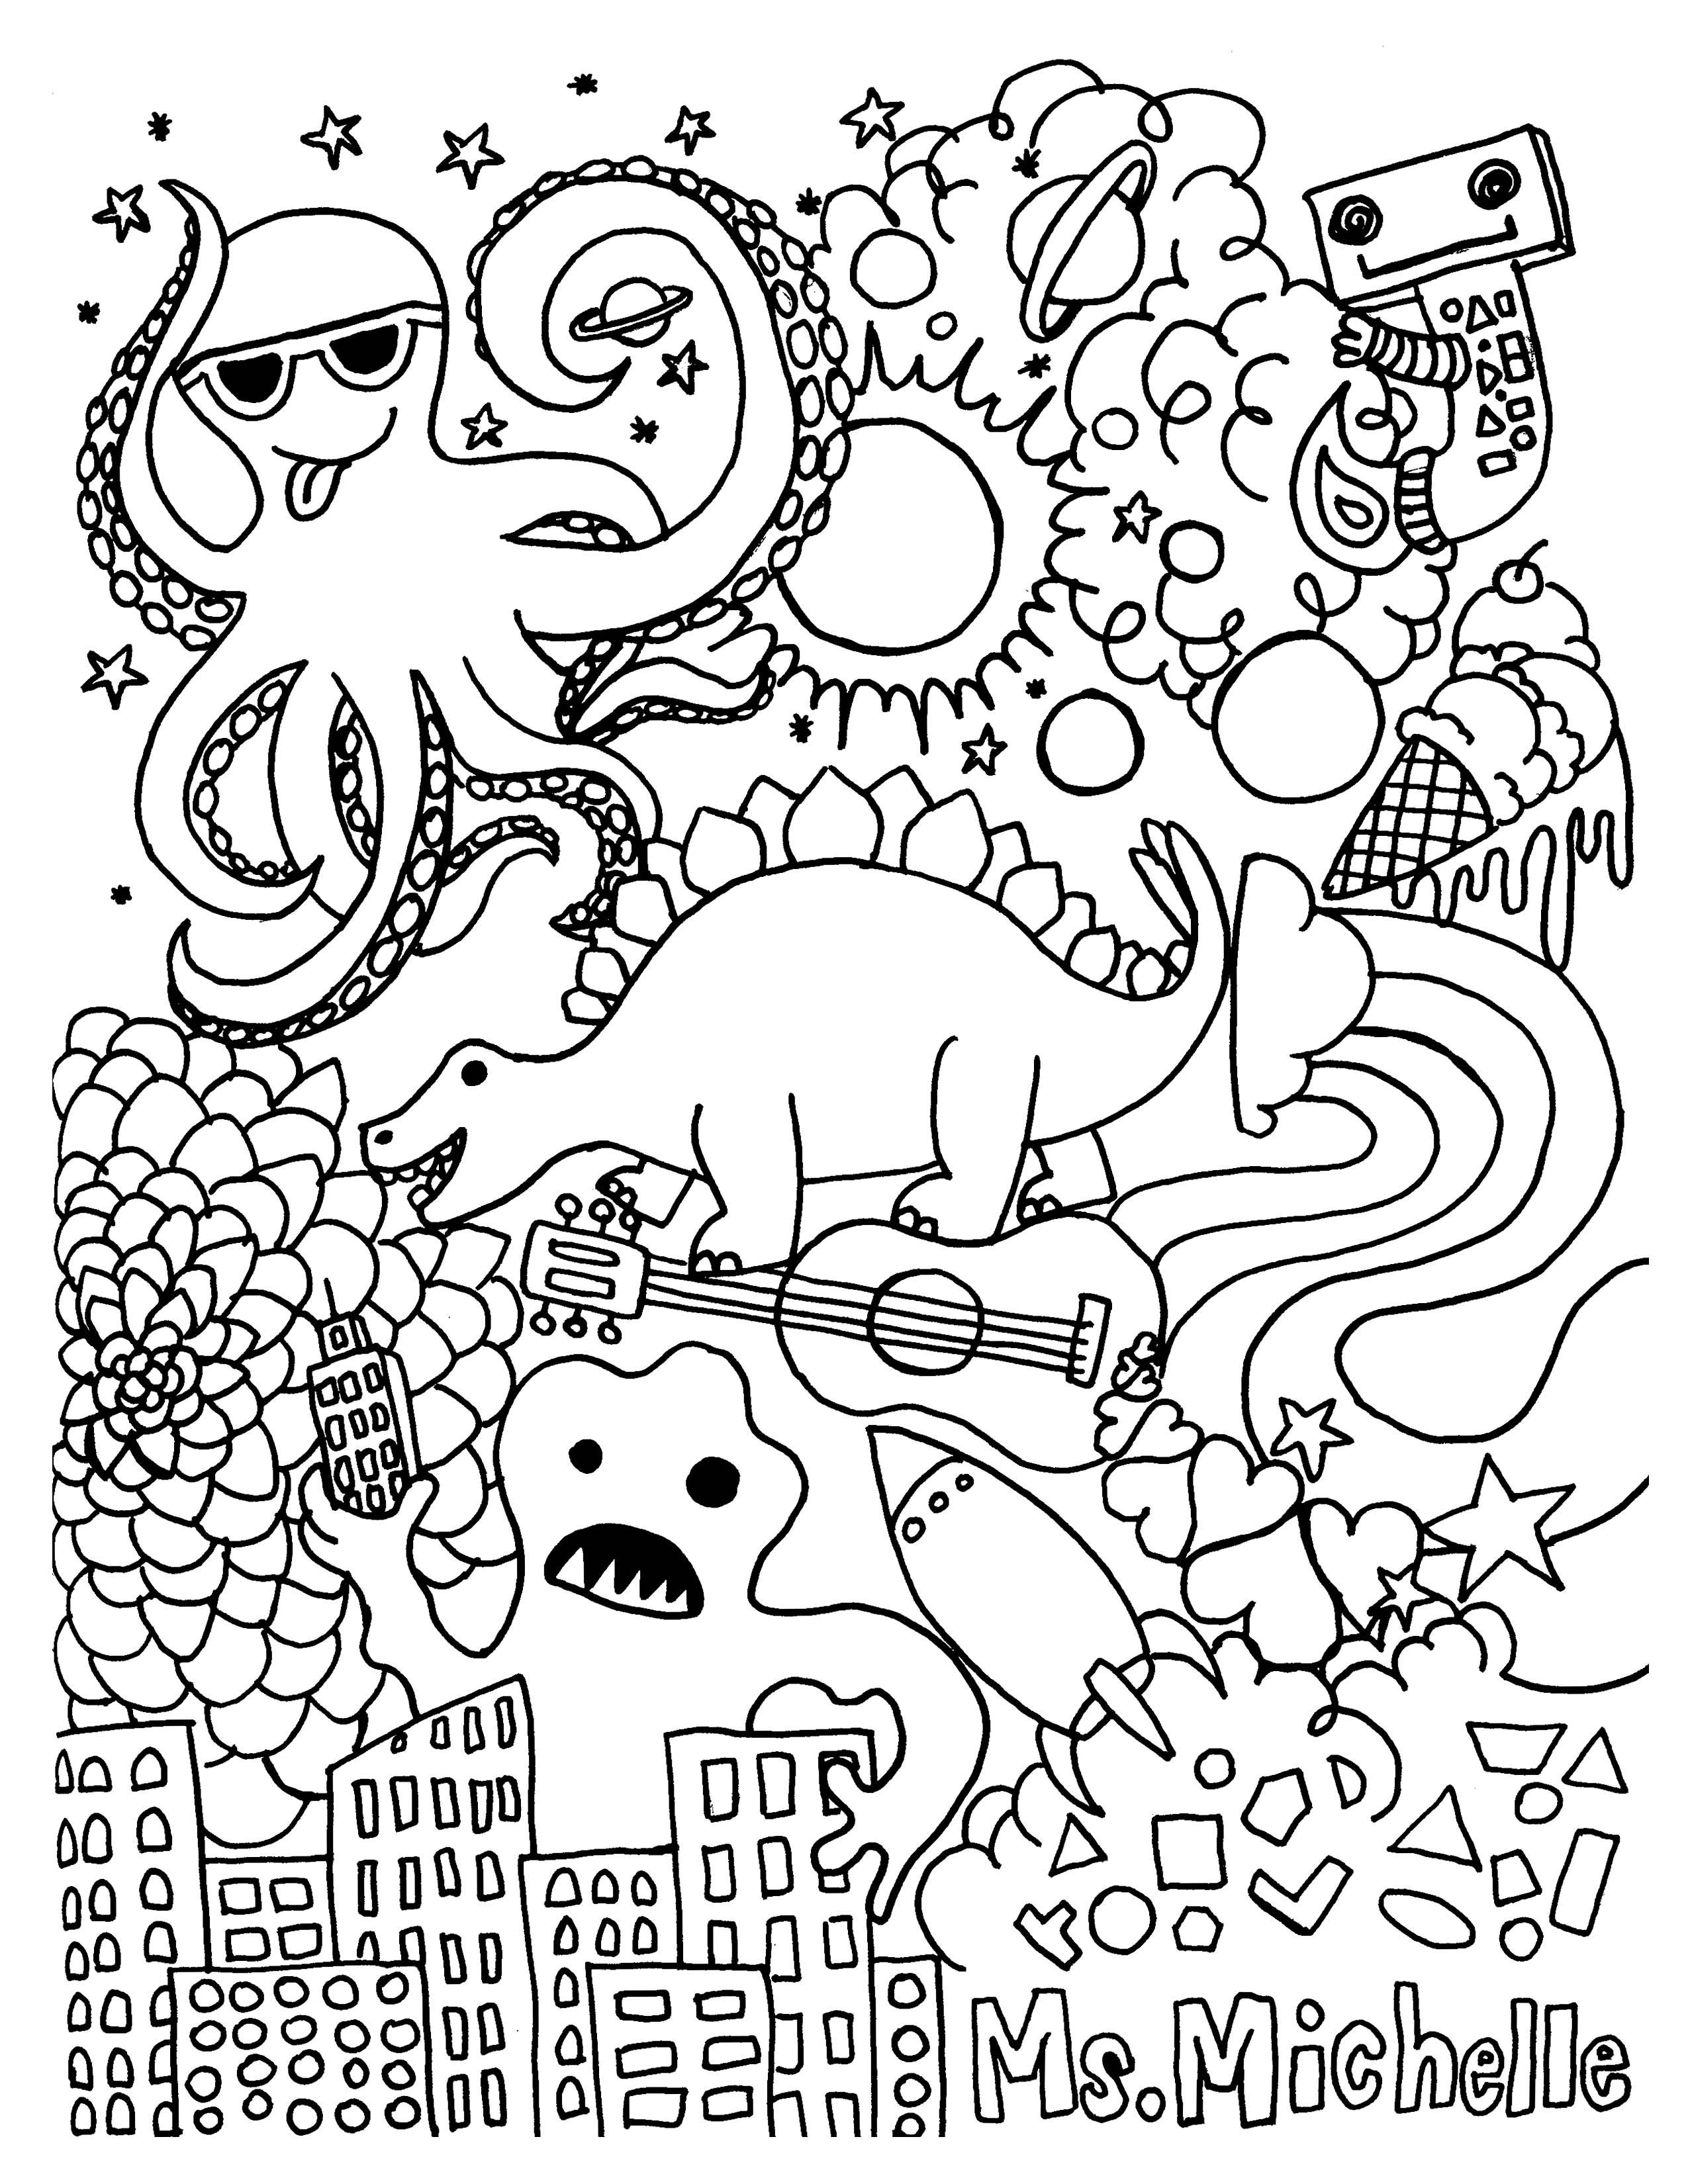 Third grade coloring pages 2 food ideas witch coloring pages house colouring pages